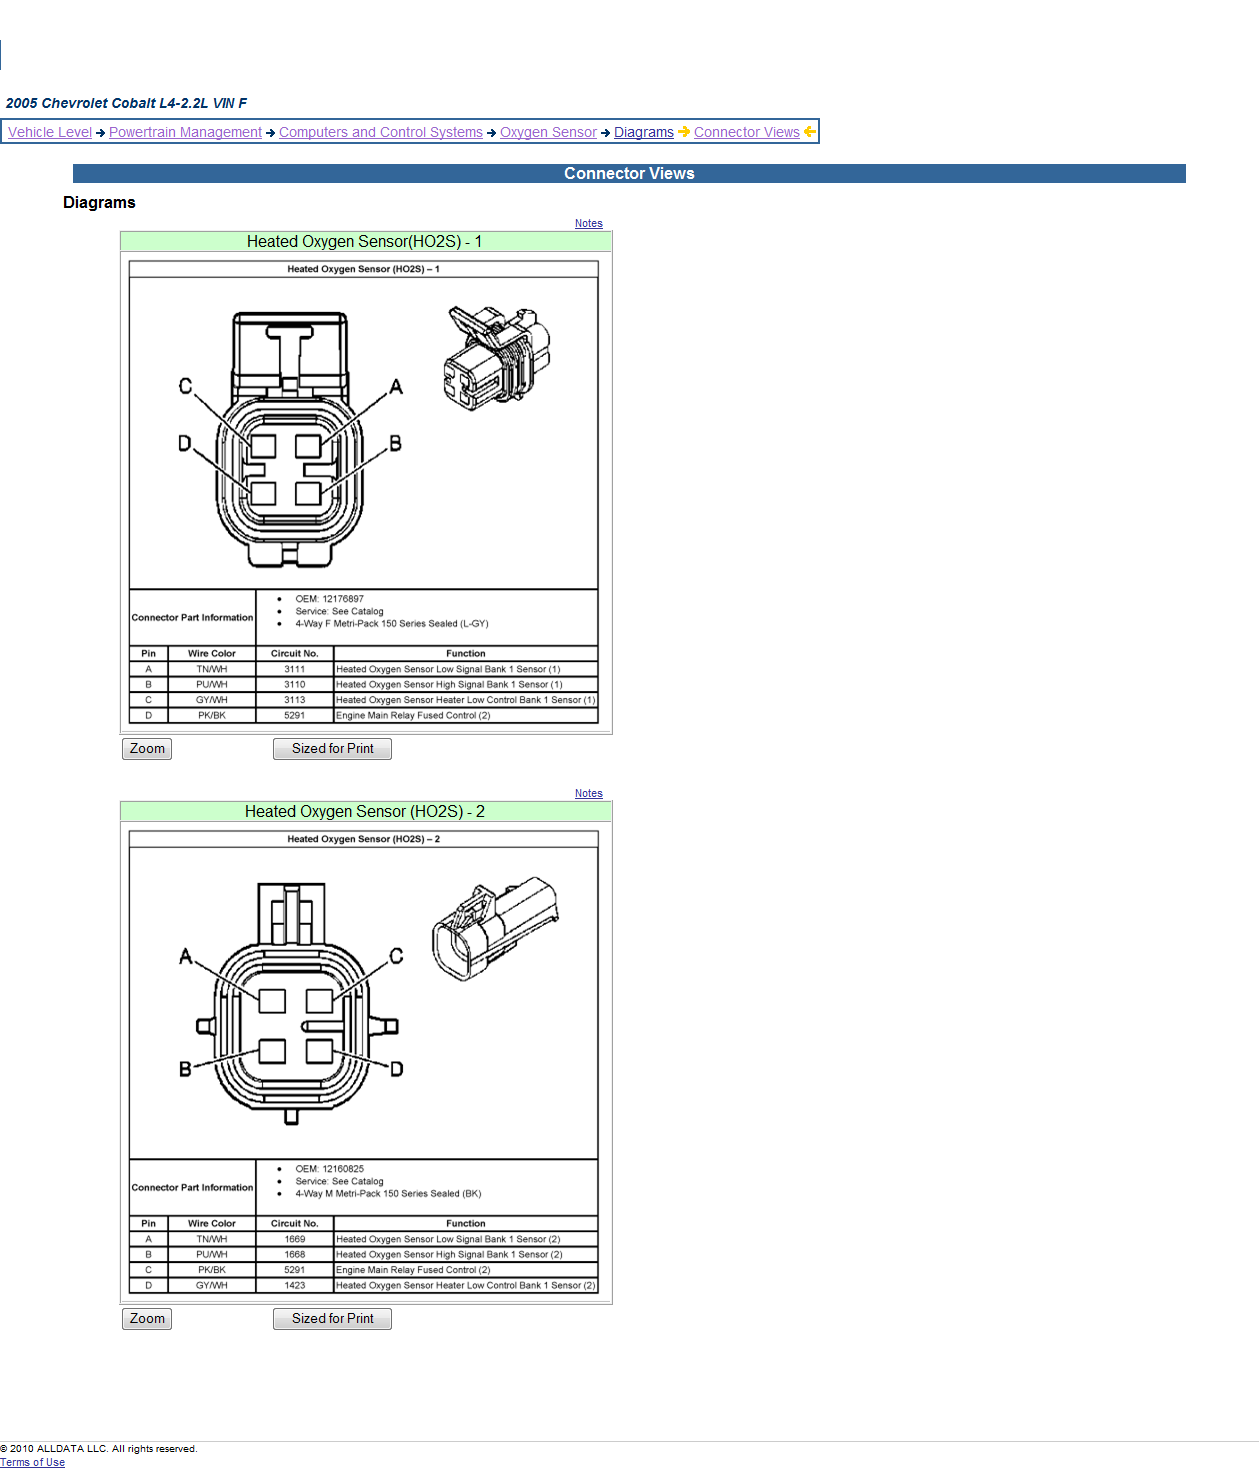 a4deda12a4f6d49137b2c3198e0ce0ff gm o2 sensor wiring diagram rough schematic engine wiring  at soozxer.org